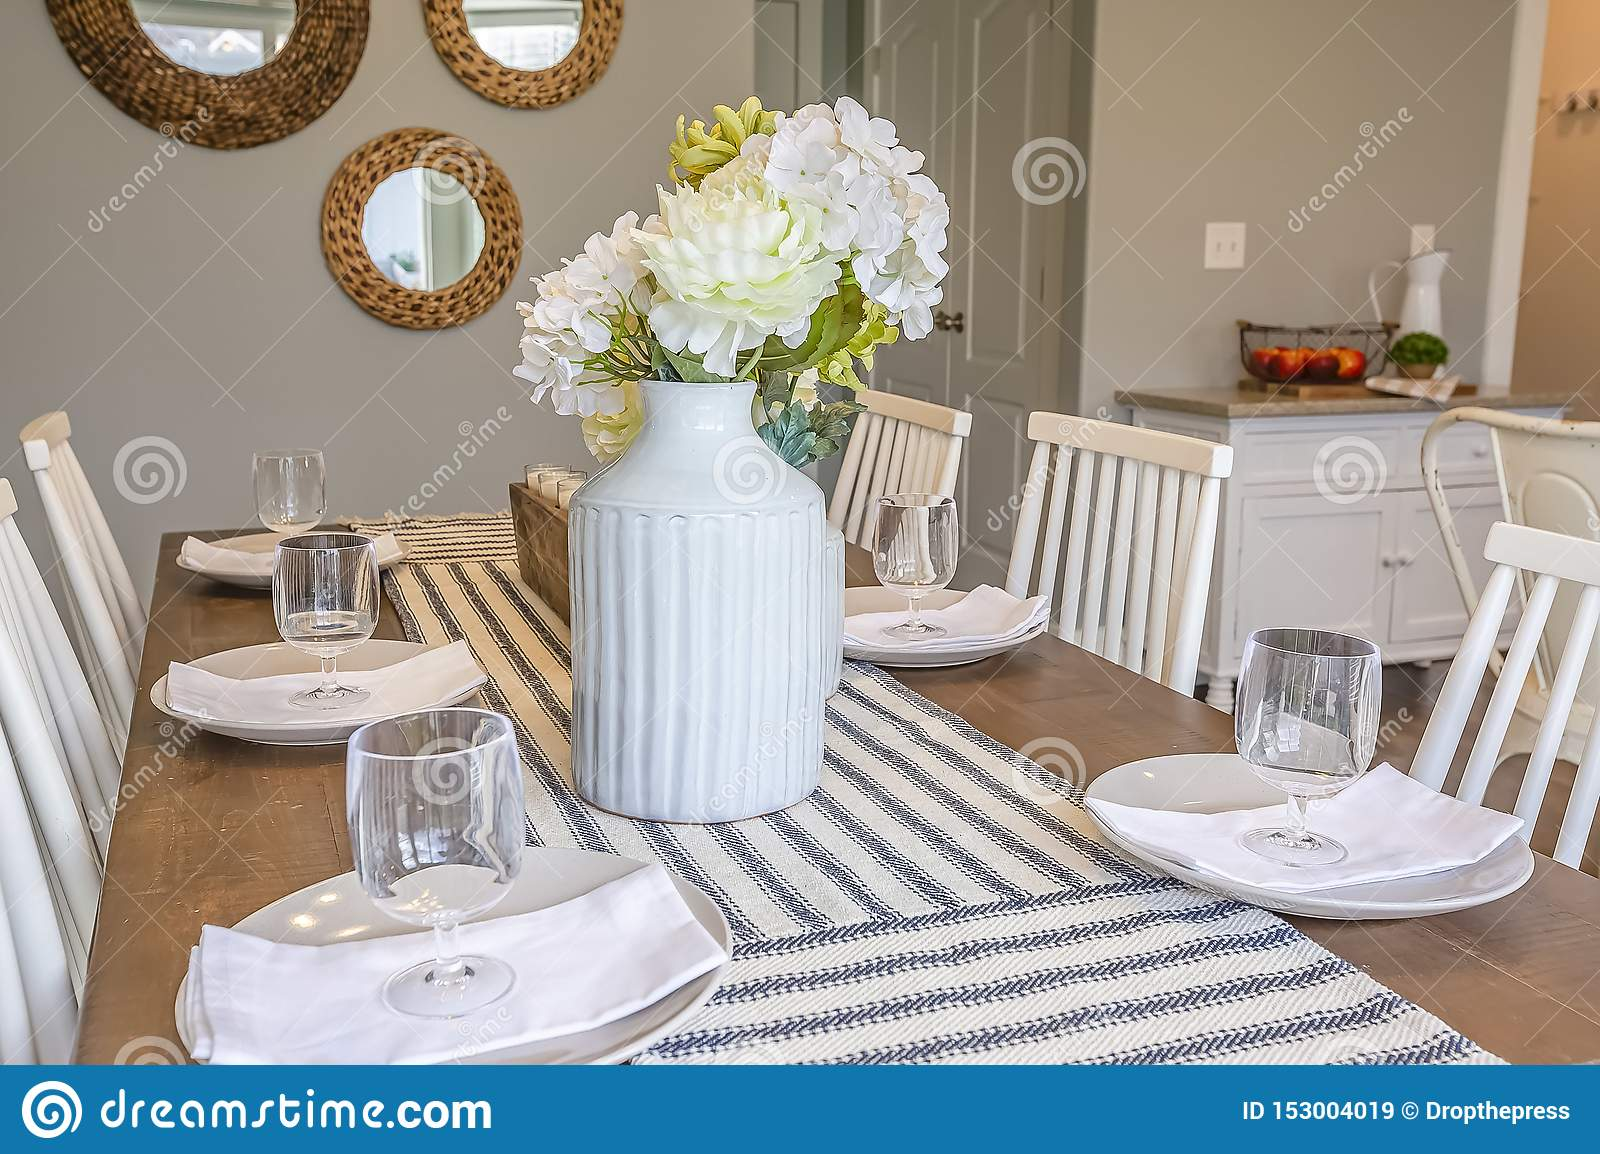 Table Setting With Table Runner Glasses White Plates Napkins And Flowers Stock Image Image Of Glass Wood 153004019